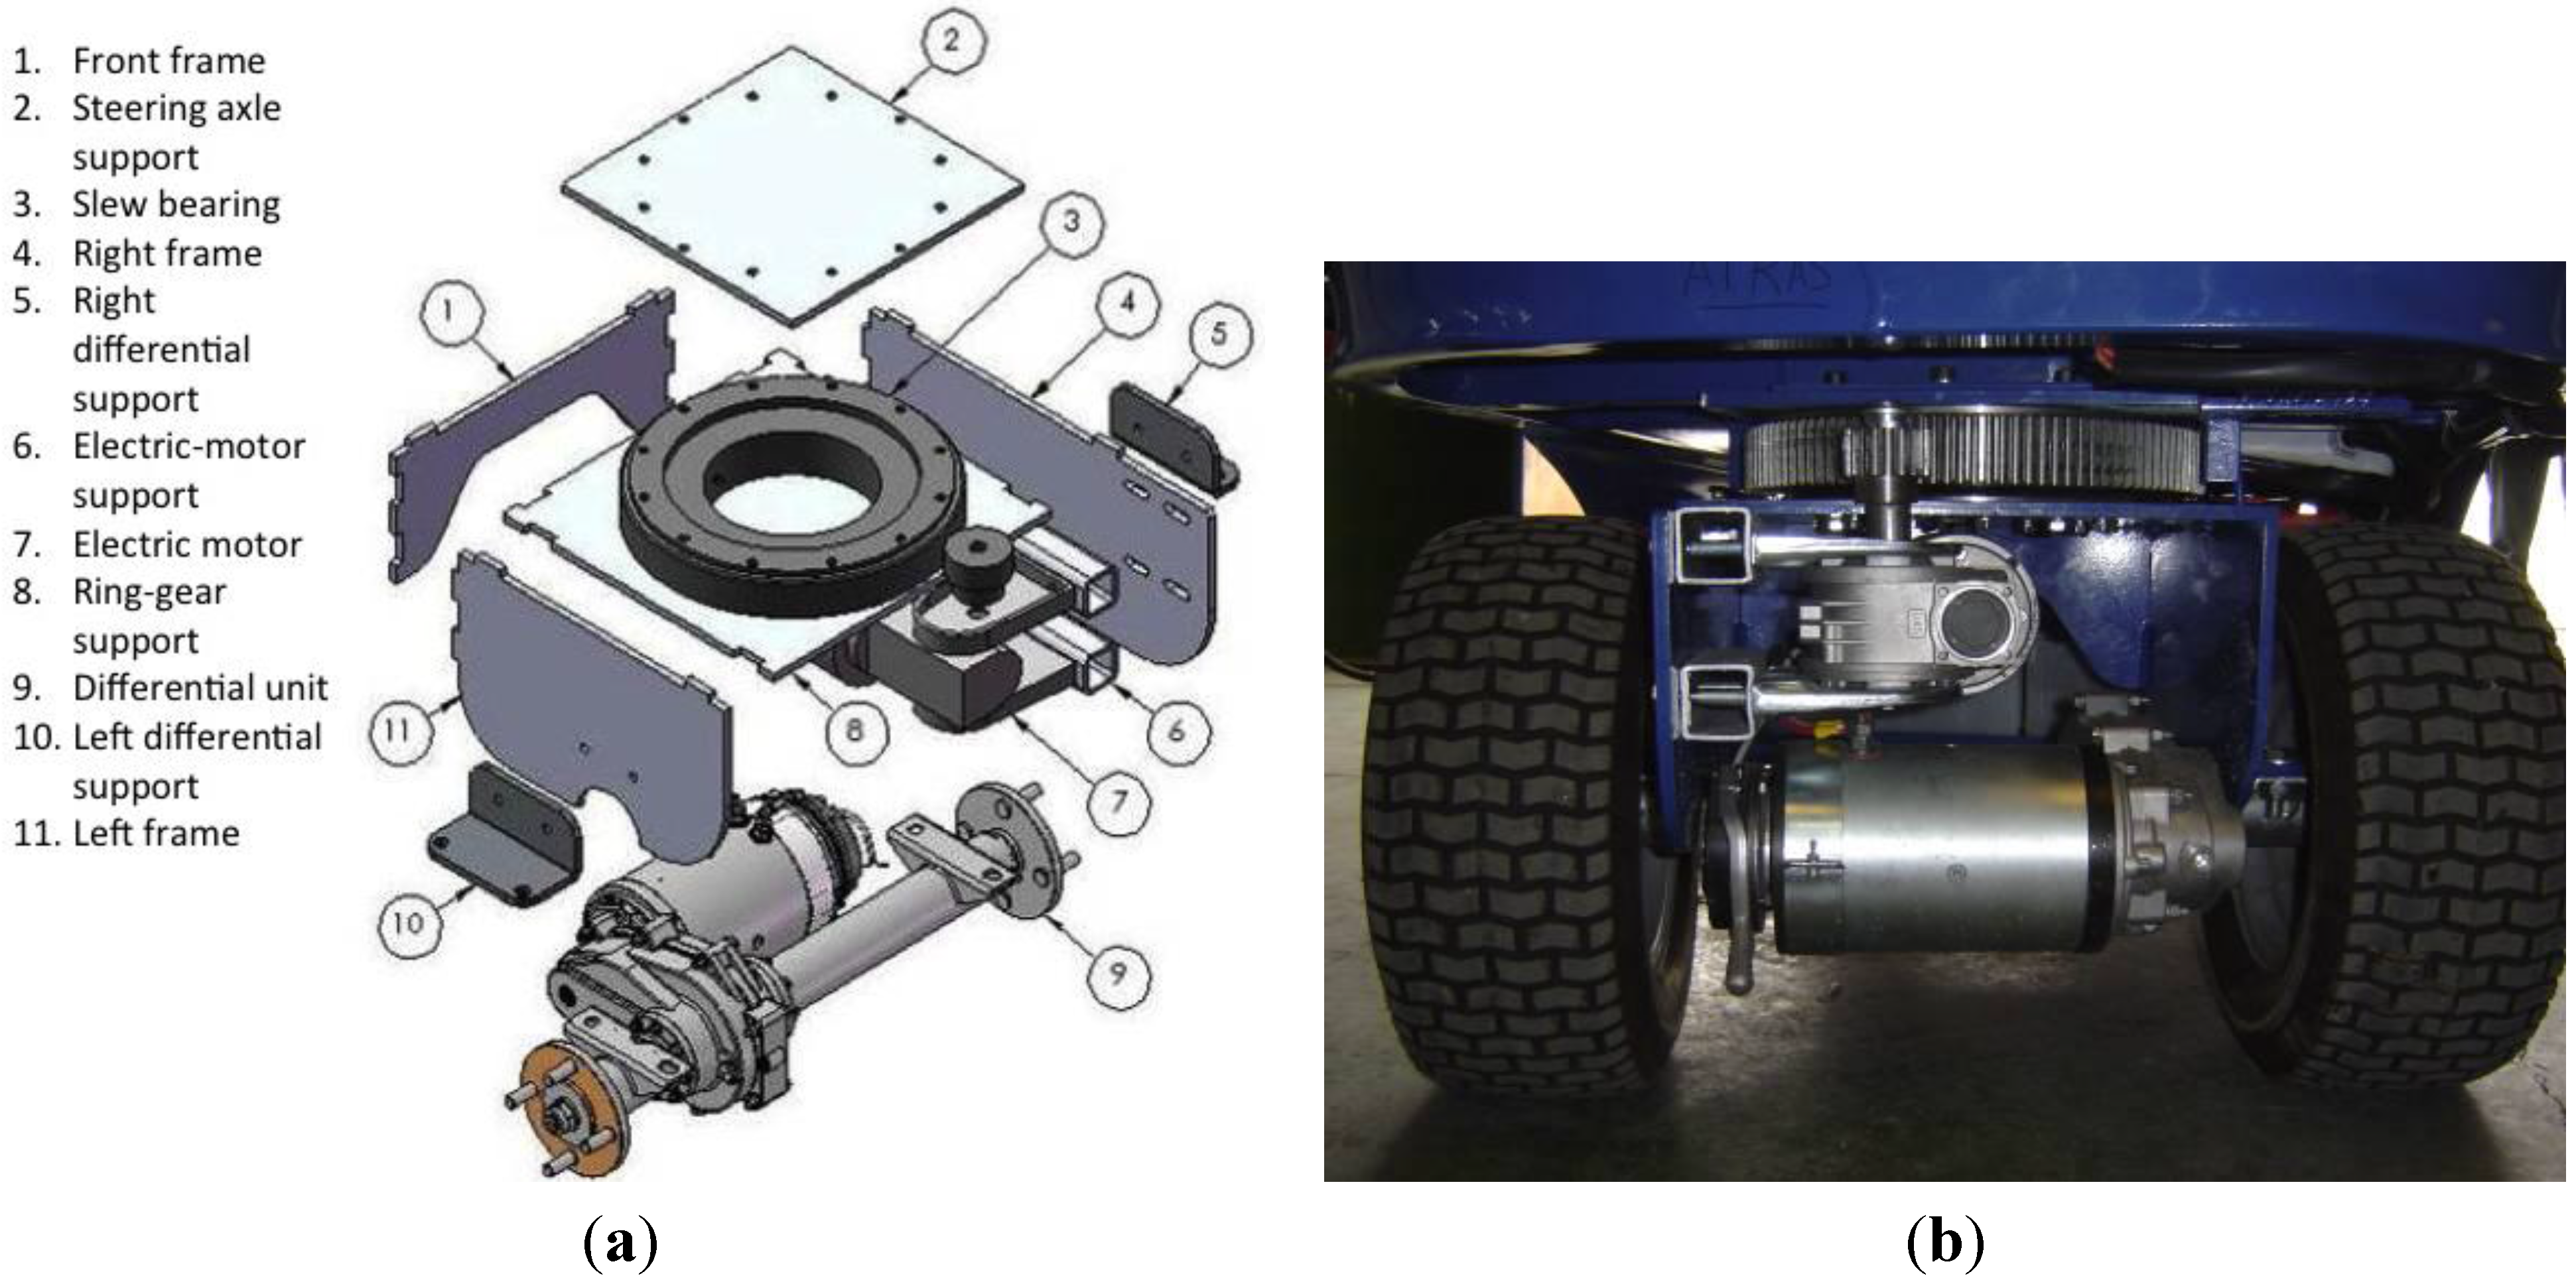 Sensors Free Full Text Mechatronic Description Of A Laser Torque Control In Electric Vehicle Propulsion Systems Intechopen 13 00769 G003